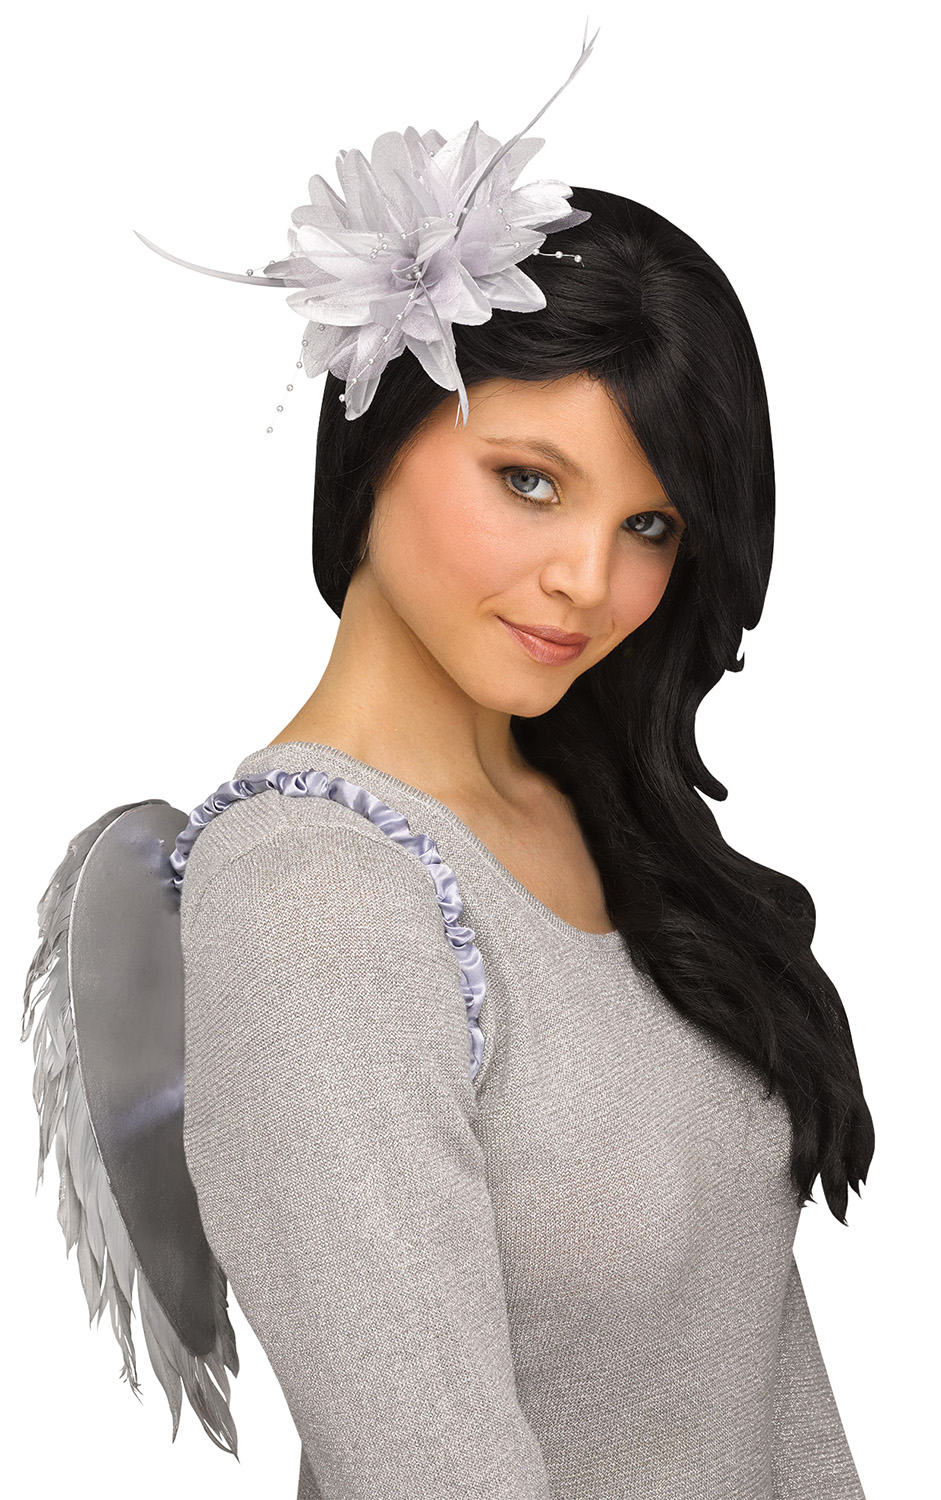 thumbnail 7 - Deluxe-Womens-Small-Glittery-Feather-Angel-Wings-Halloween-Costume-Accessory